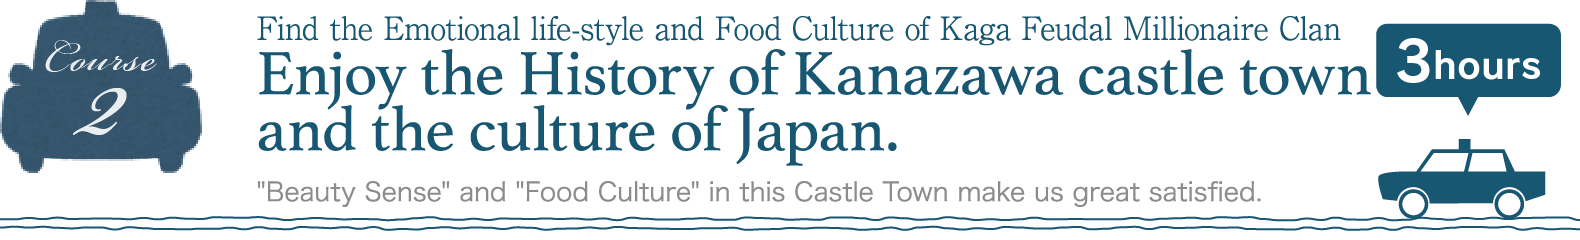 Enjoy the History of Kanazawa castle town and the culture of Japan.